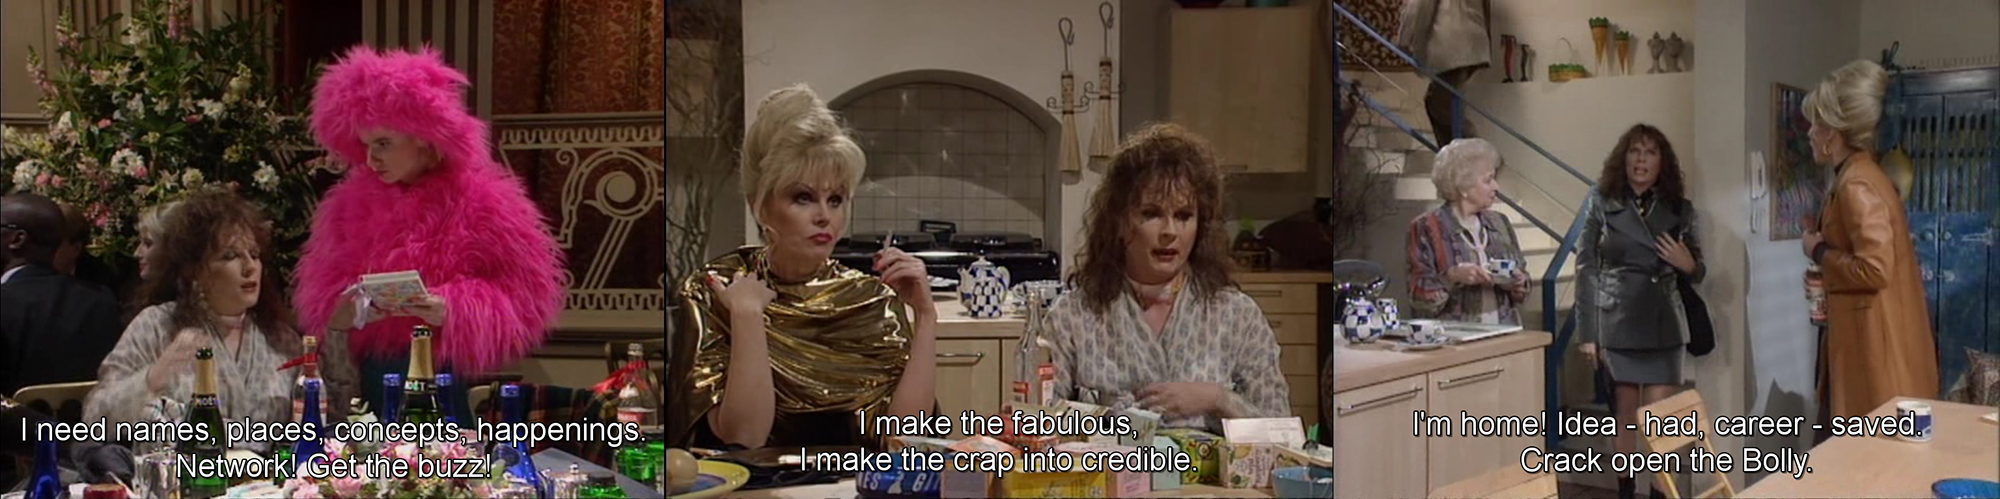 Absolutely Fabulous, Season 3, aflevering Jealous, 2 oktober 1995, BBC